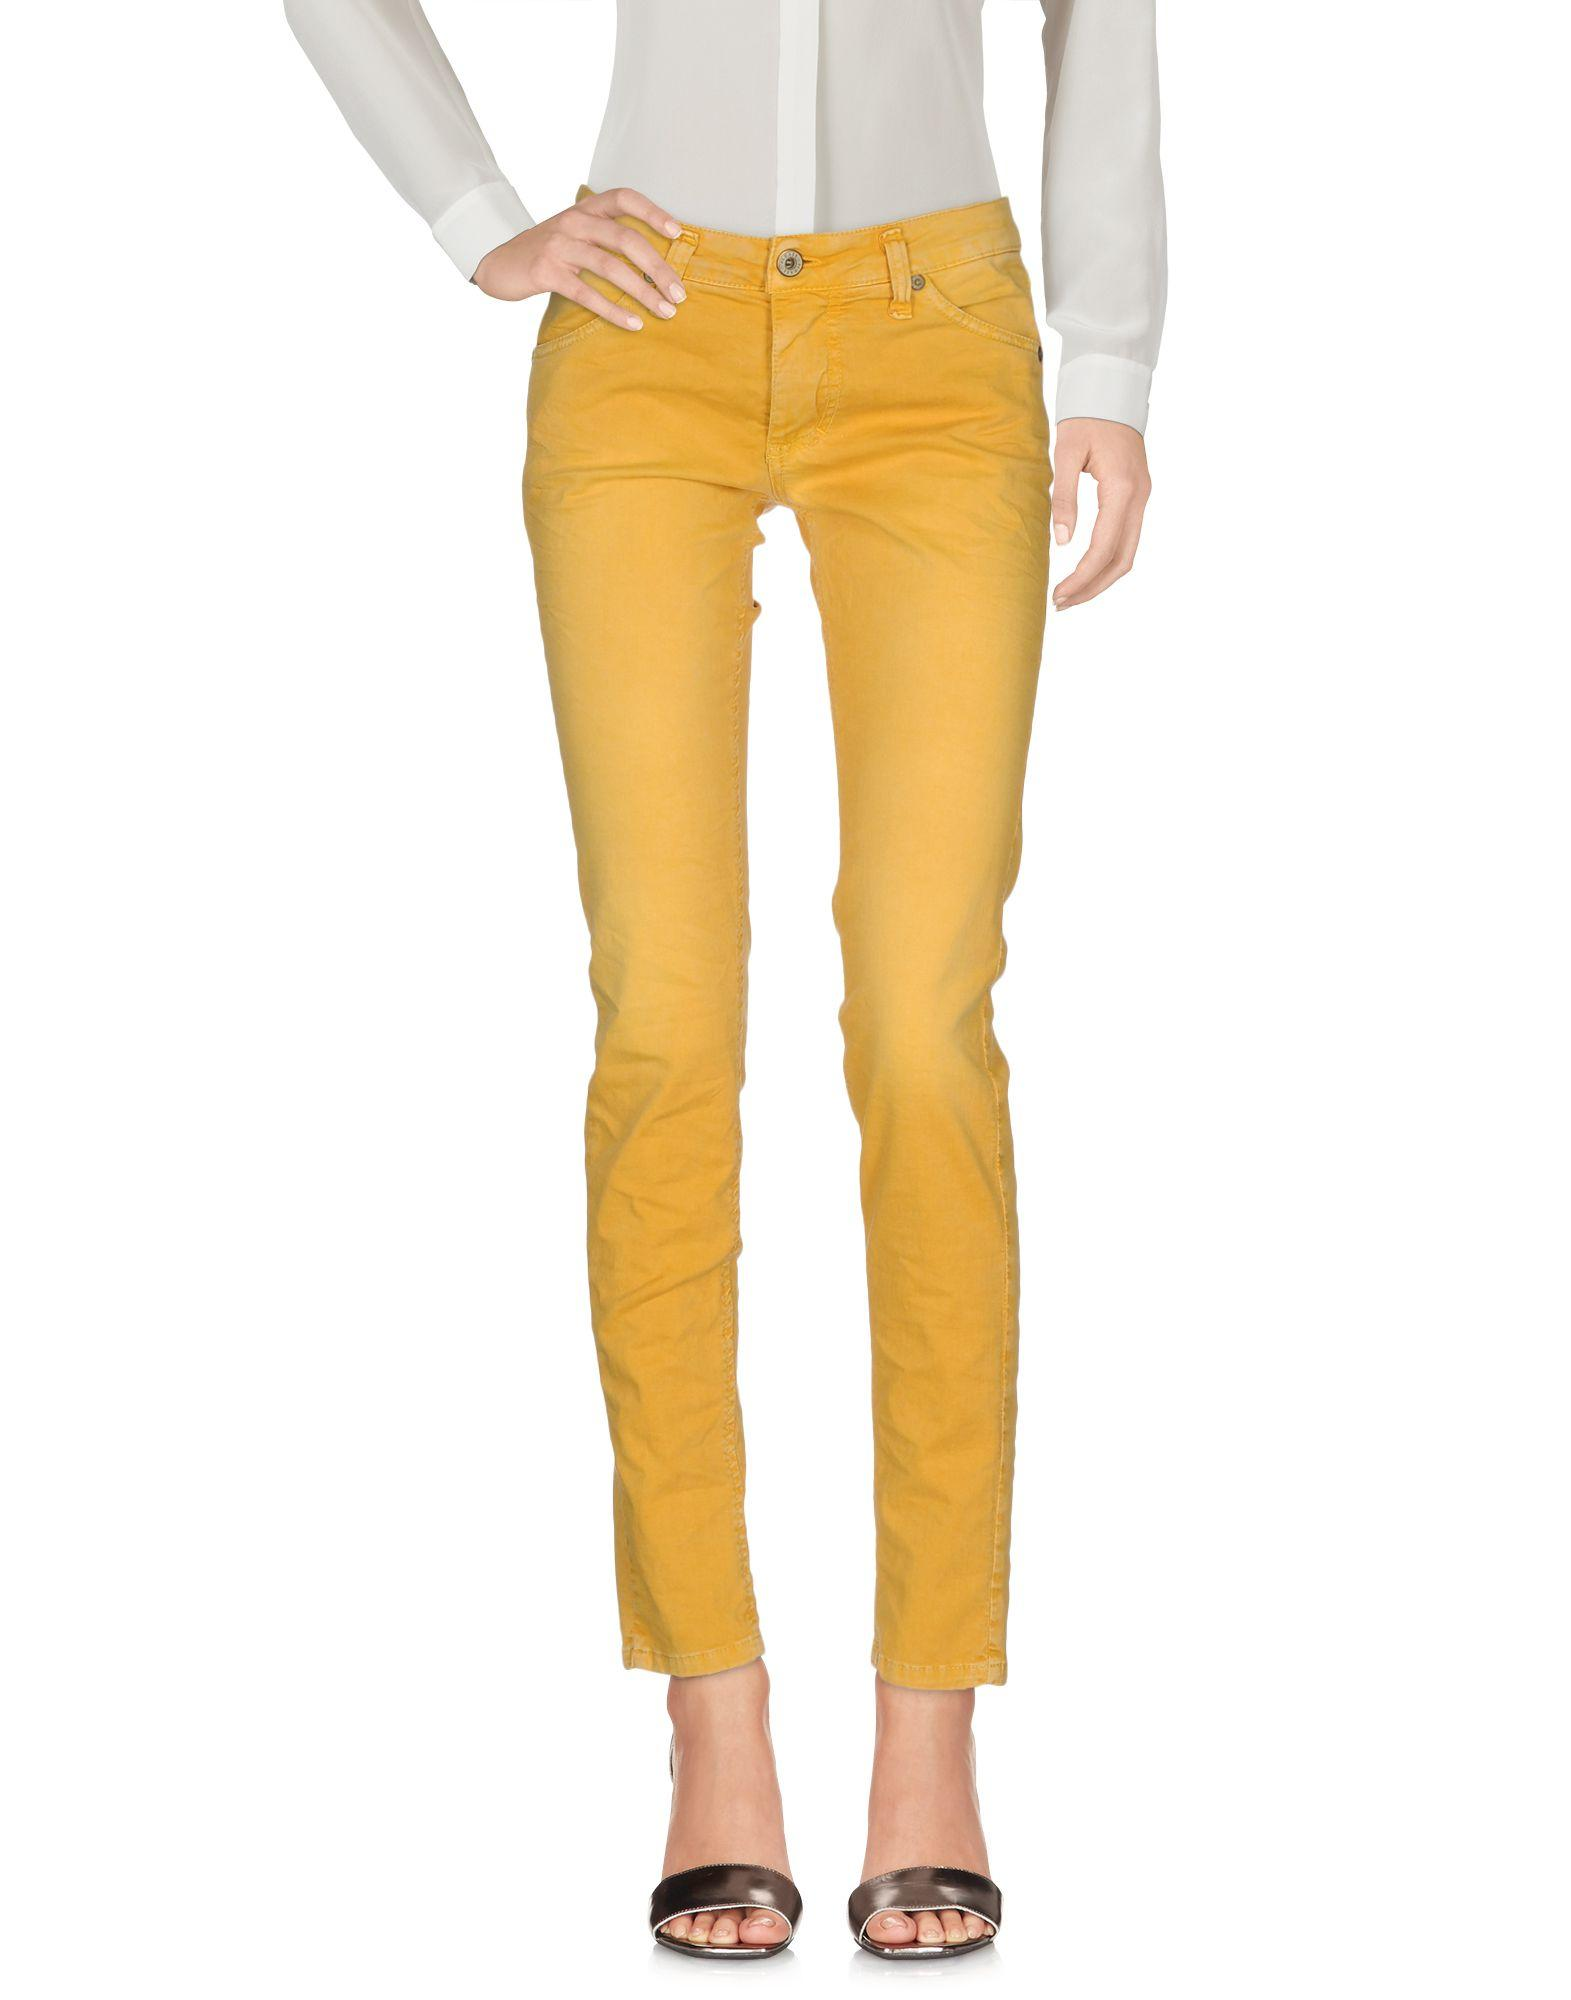 Shop for yellow pants women online at Target. Free shipping on purchases over $35 and save 5% every day with your Target REDcard.